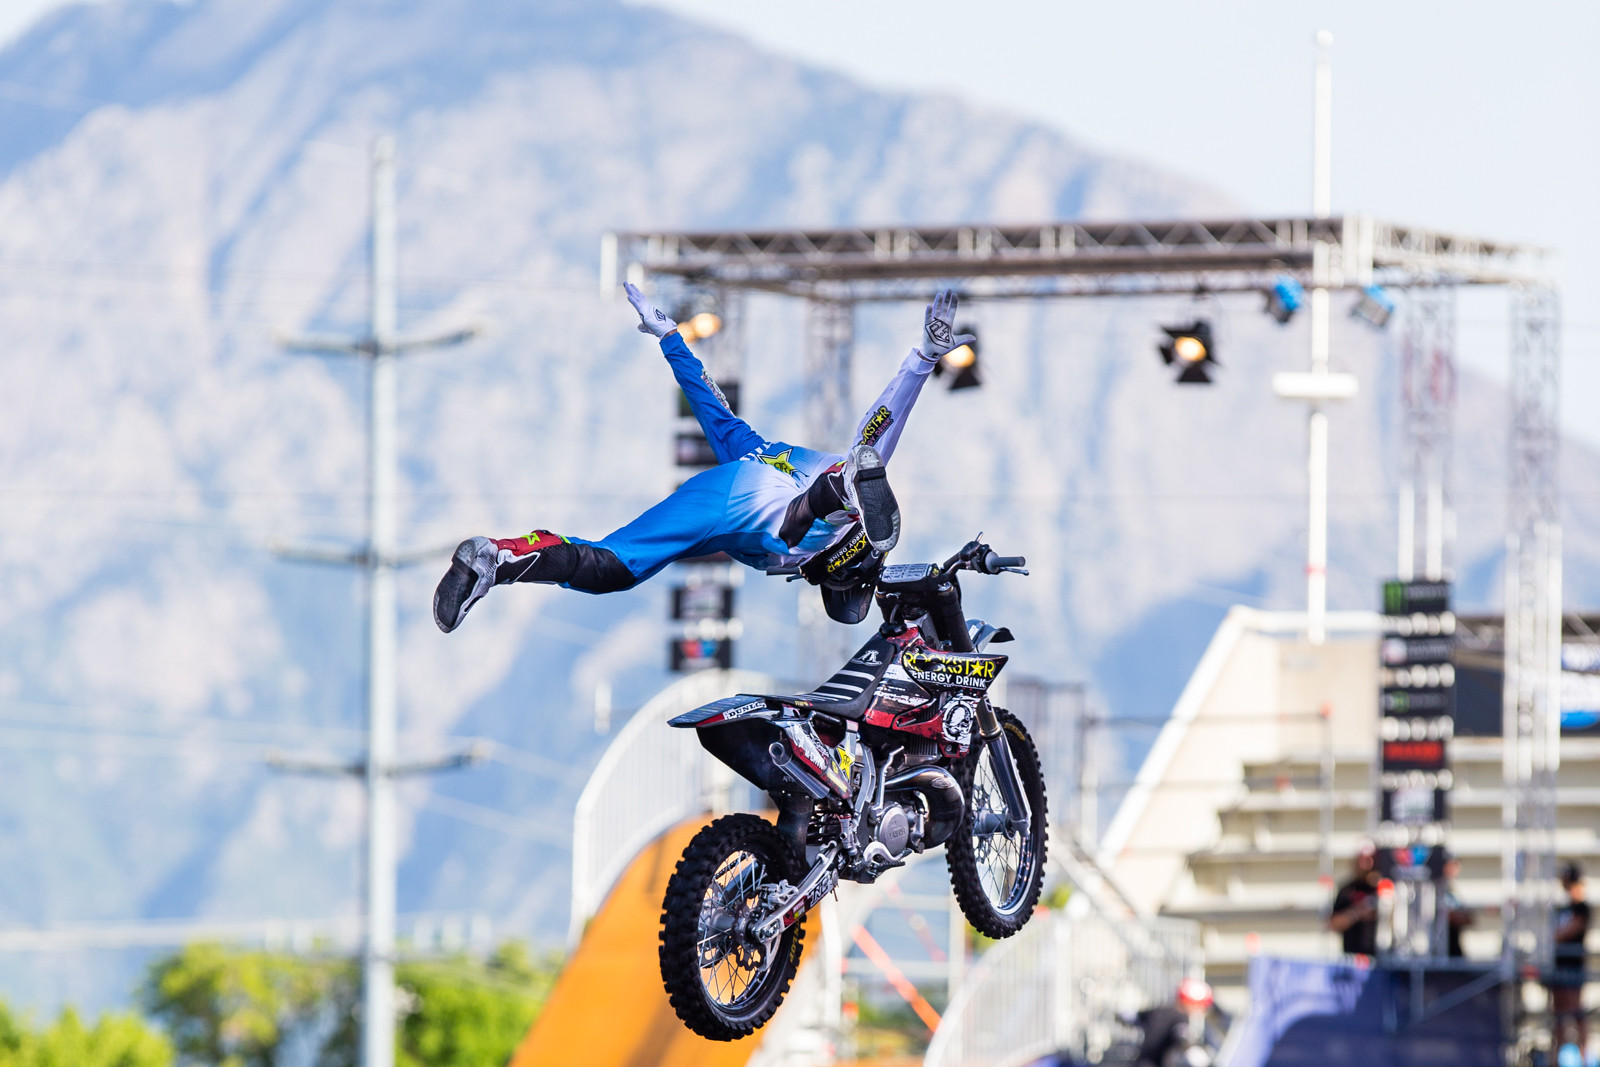 Rob Adelberg - 2016 Nitro World Games: FMX and Best Trick Finals Gallery - Motocross Pictures - Vital MX